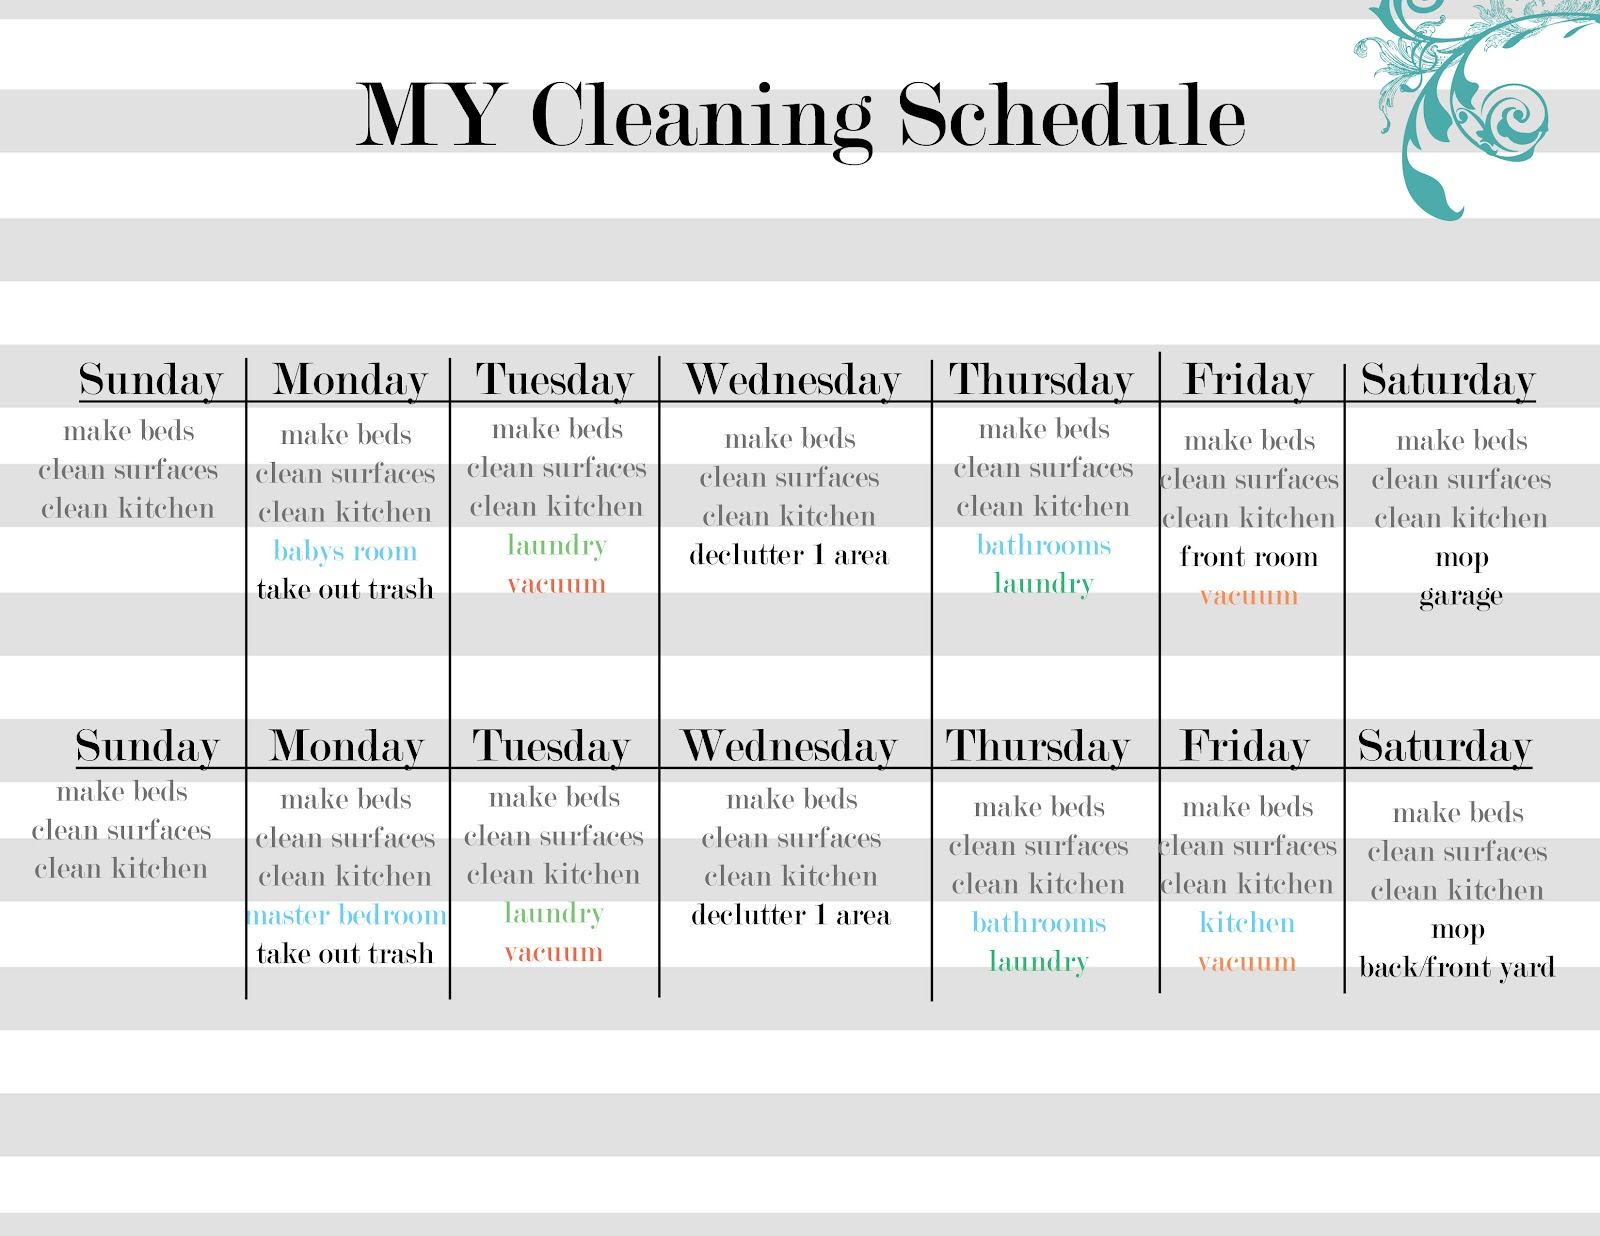 Daily Cleaning Schedule Template - Monday through friday schedule template